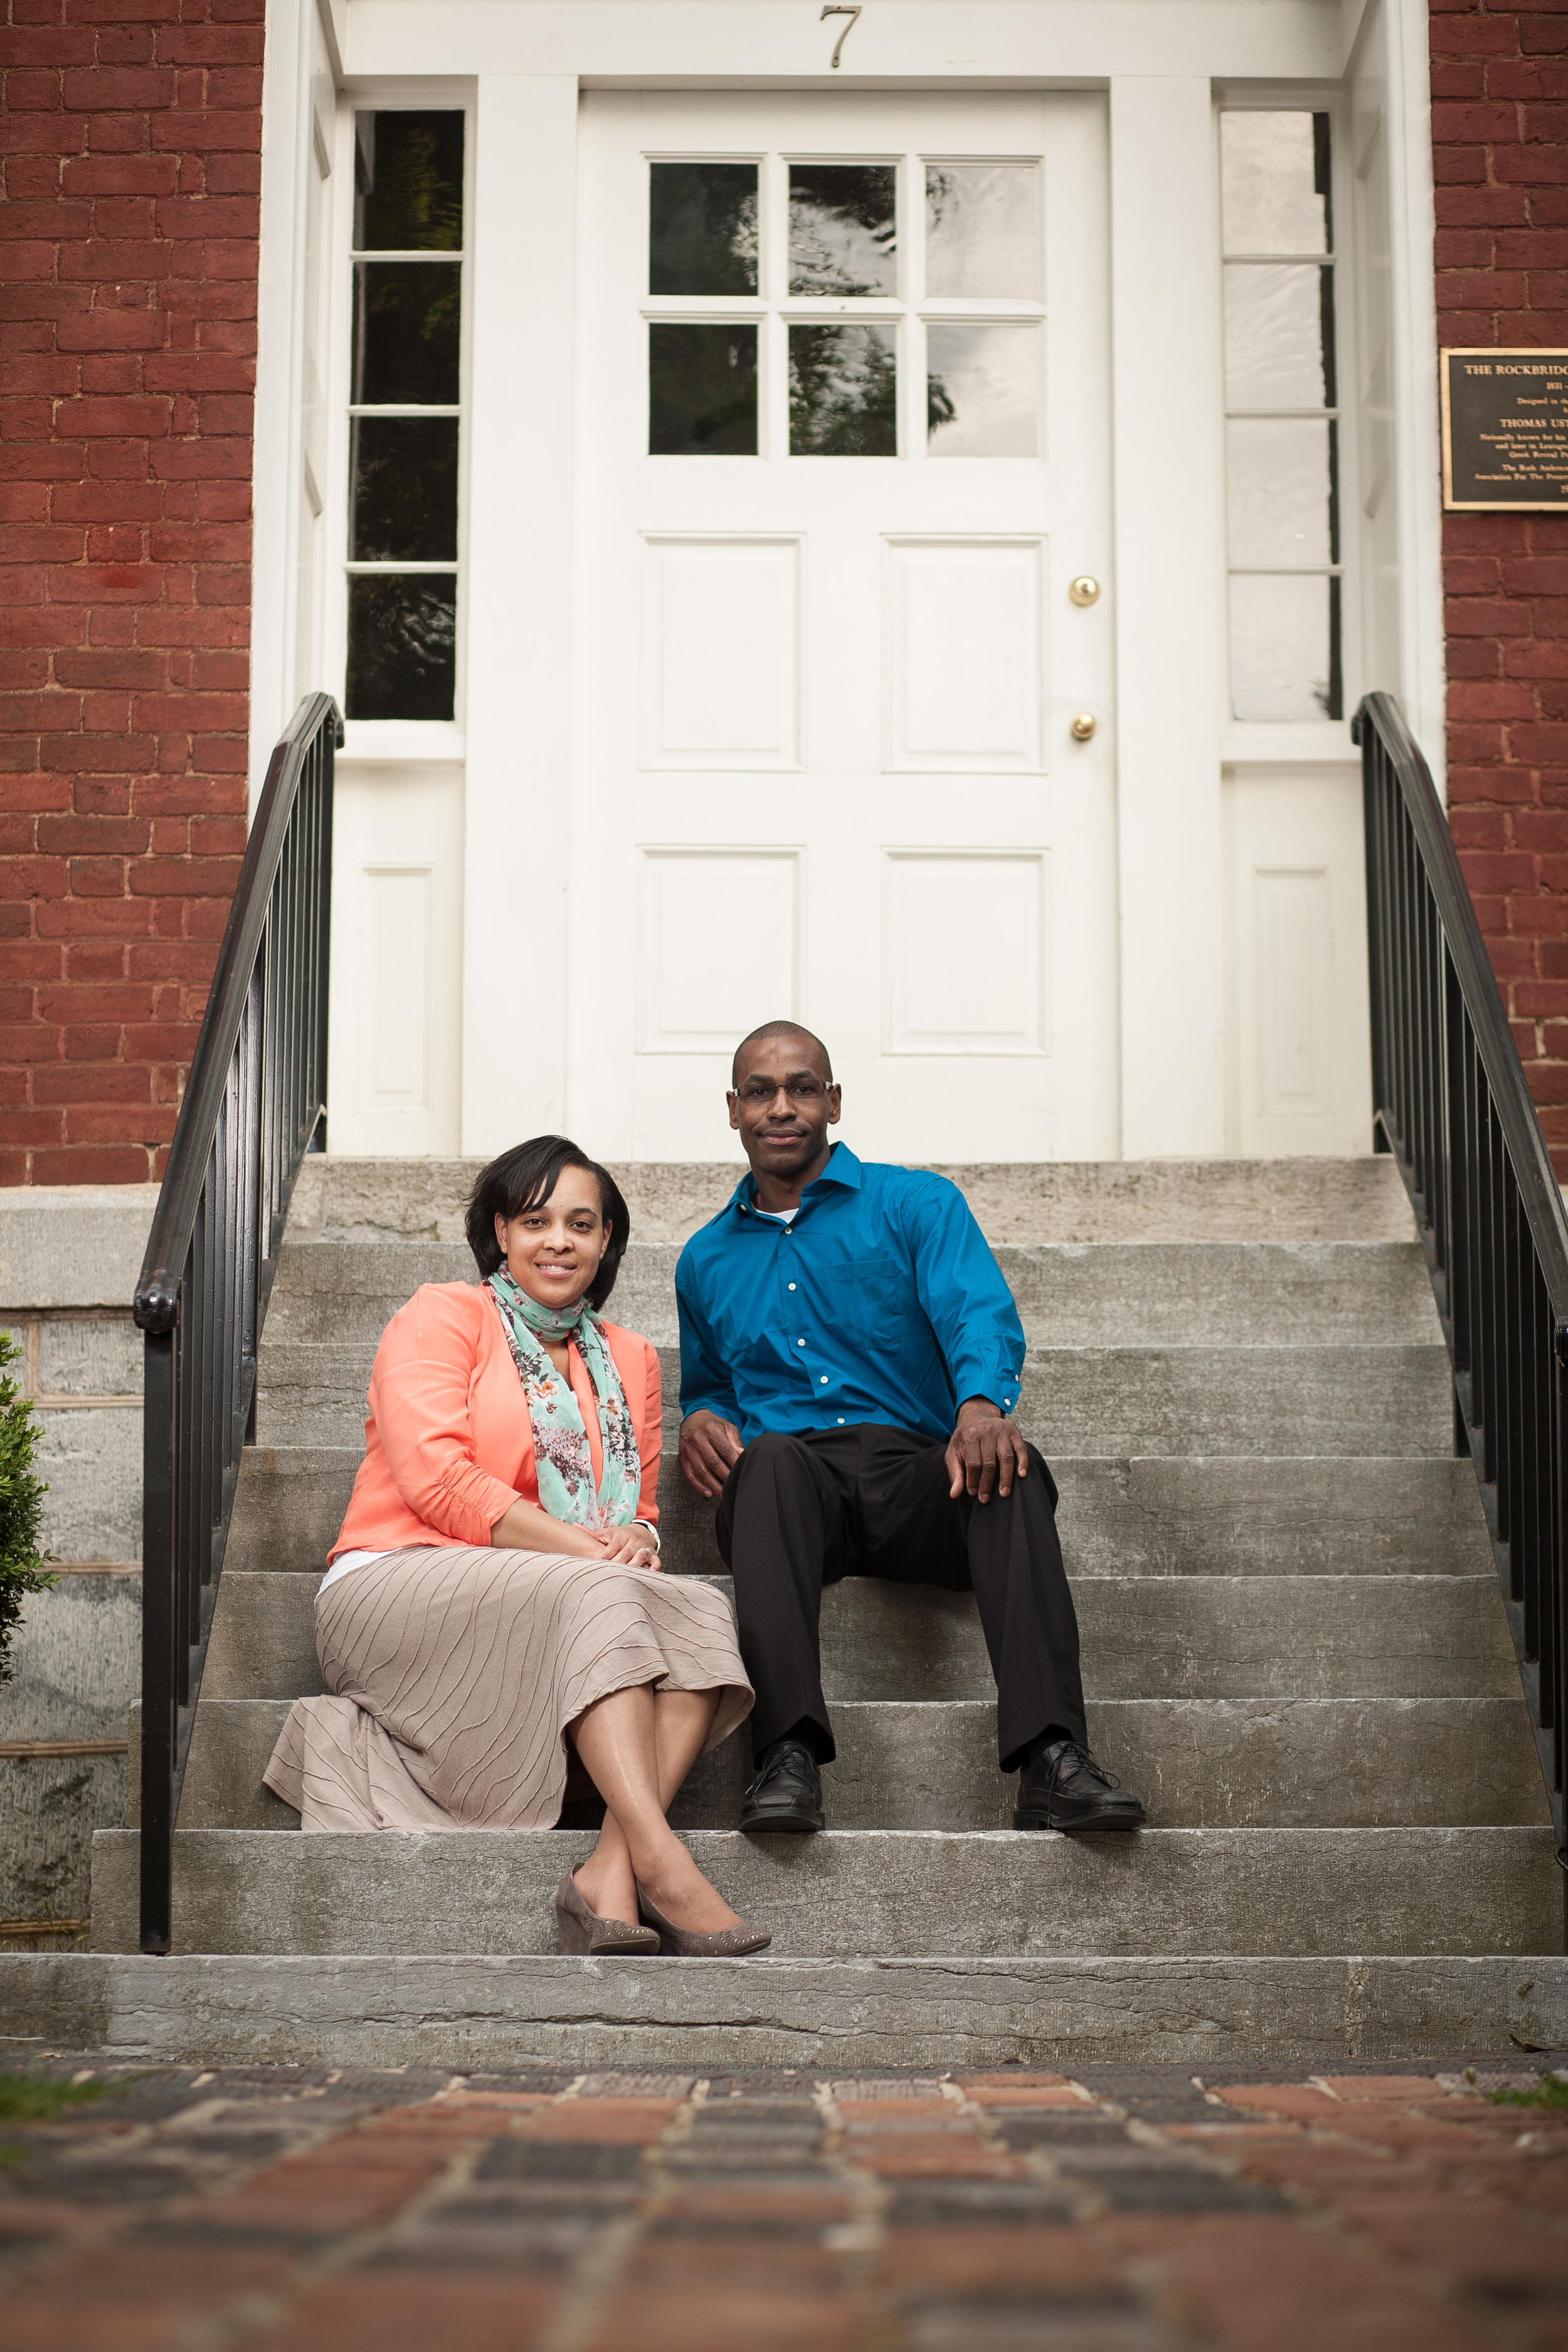 Engaed couple posed on stairs in Lexington, Virginia